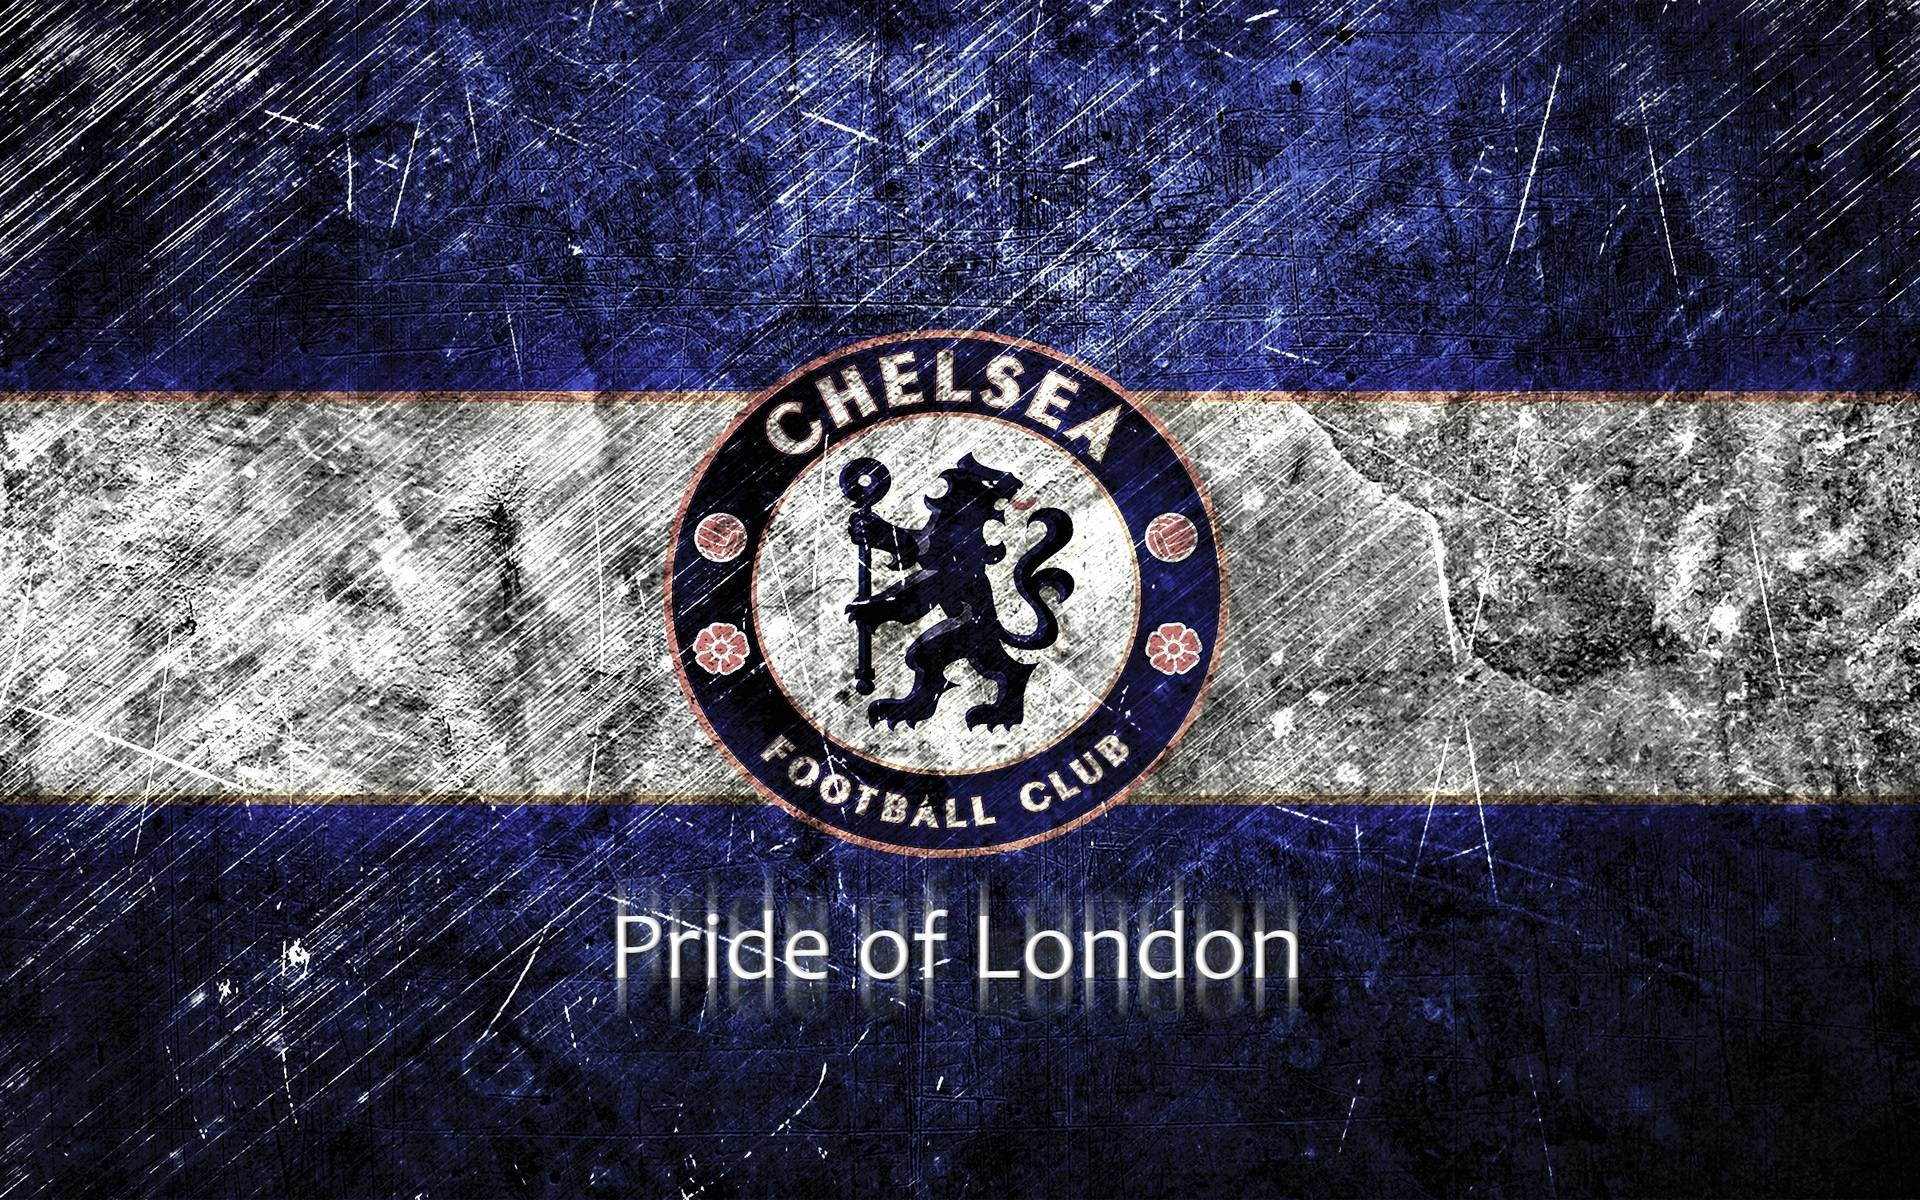 Chelsea HD Wallpapers 1080p 75 images 1920x1200